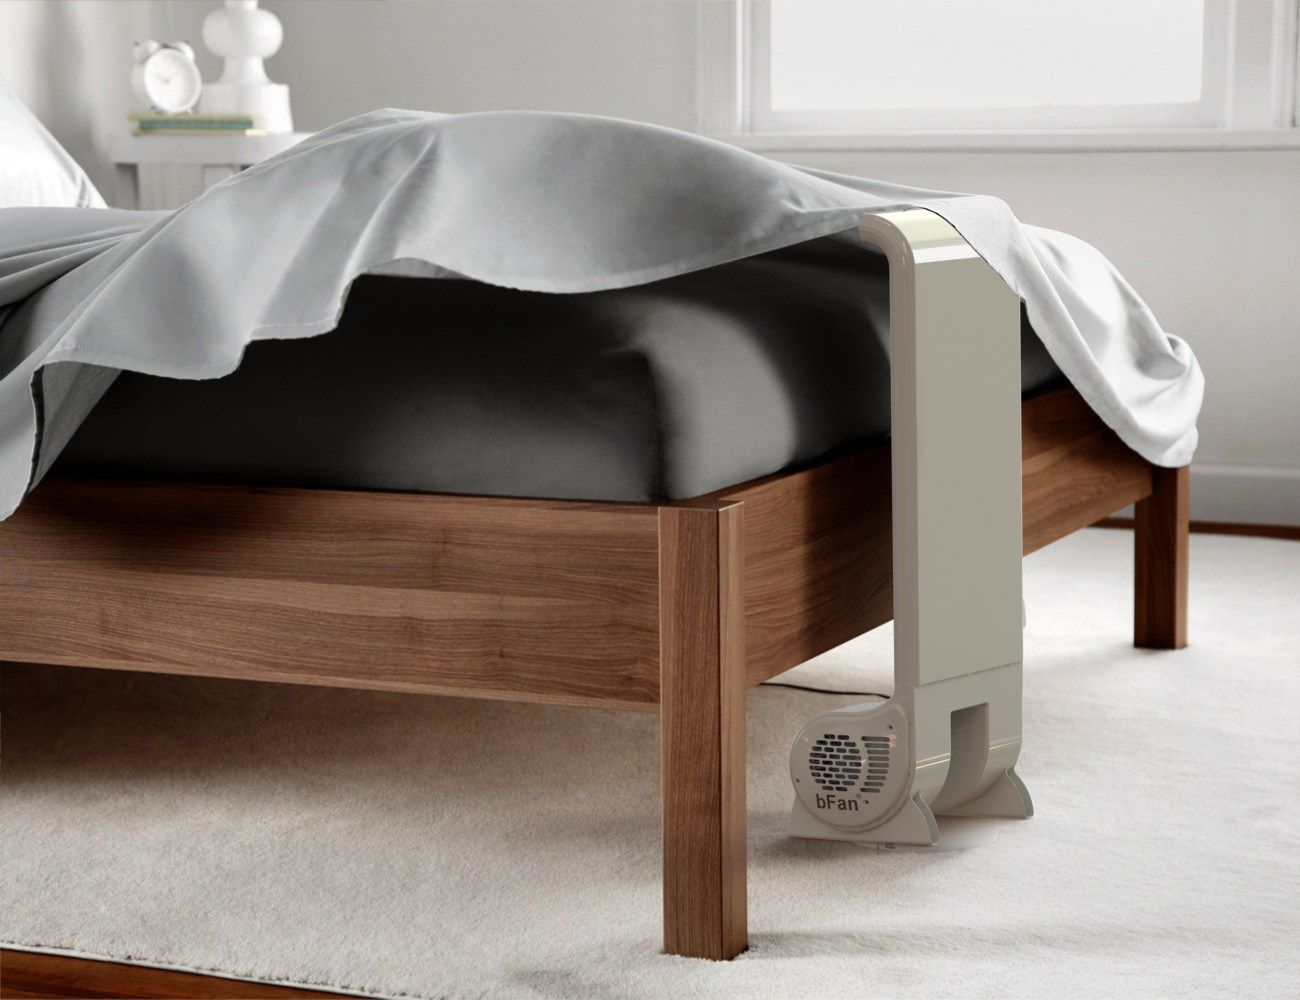 Bfan Air Cooling Bed Fan Replaces Hot Air With Cool Air For A